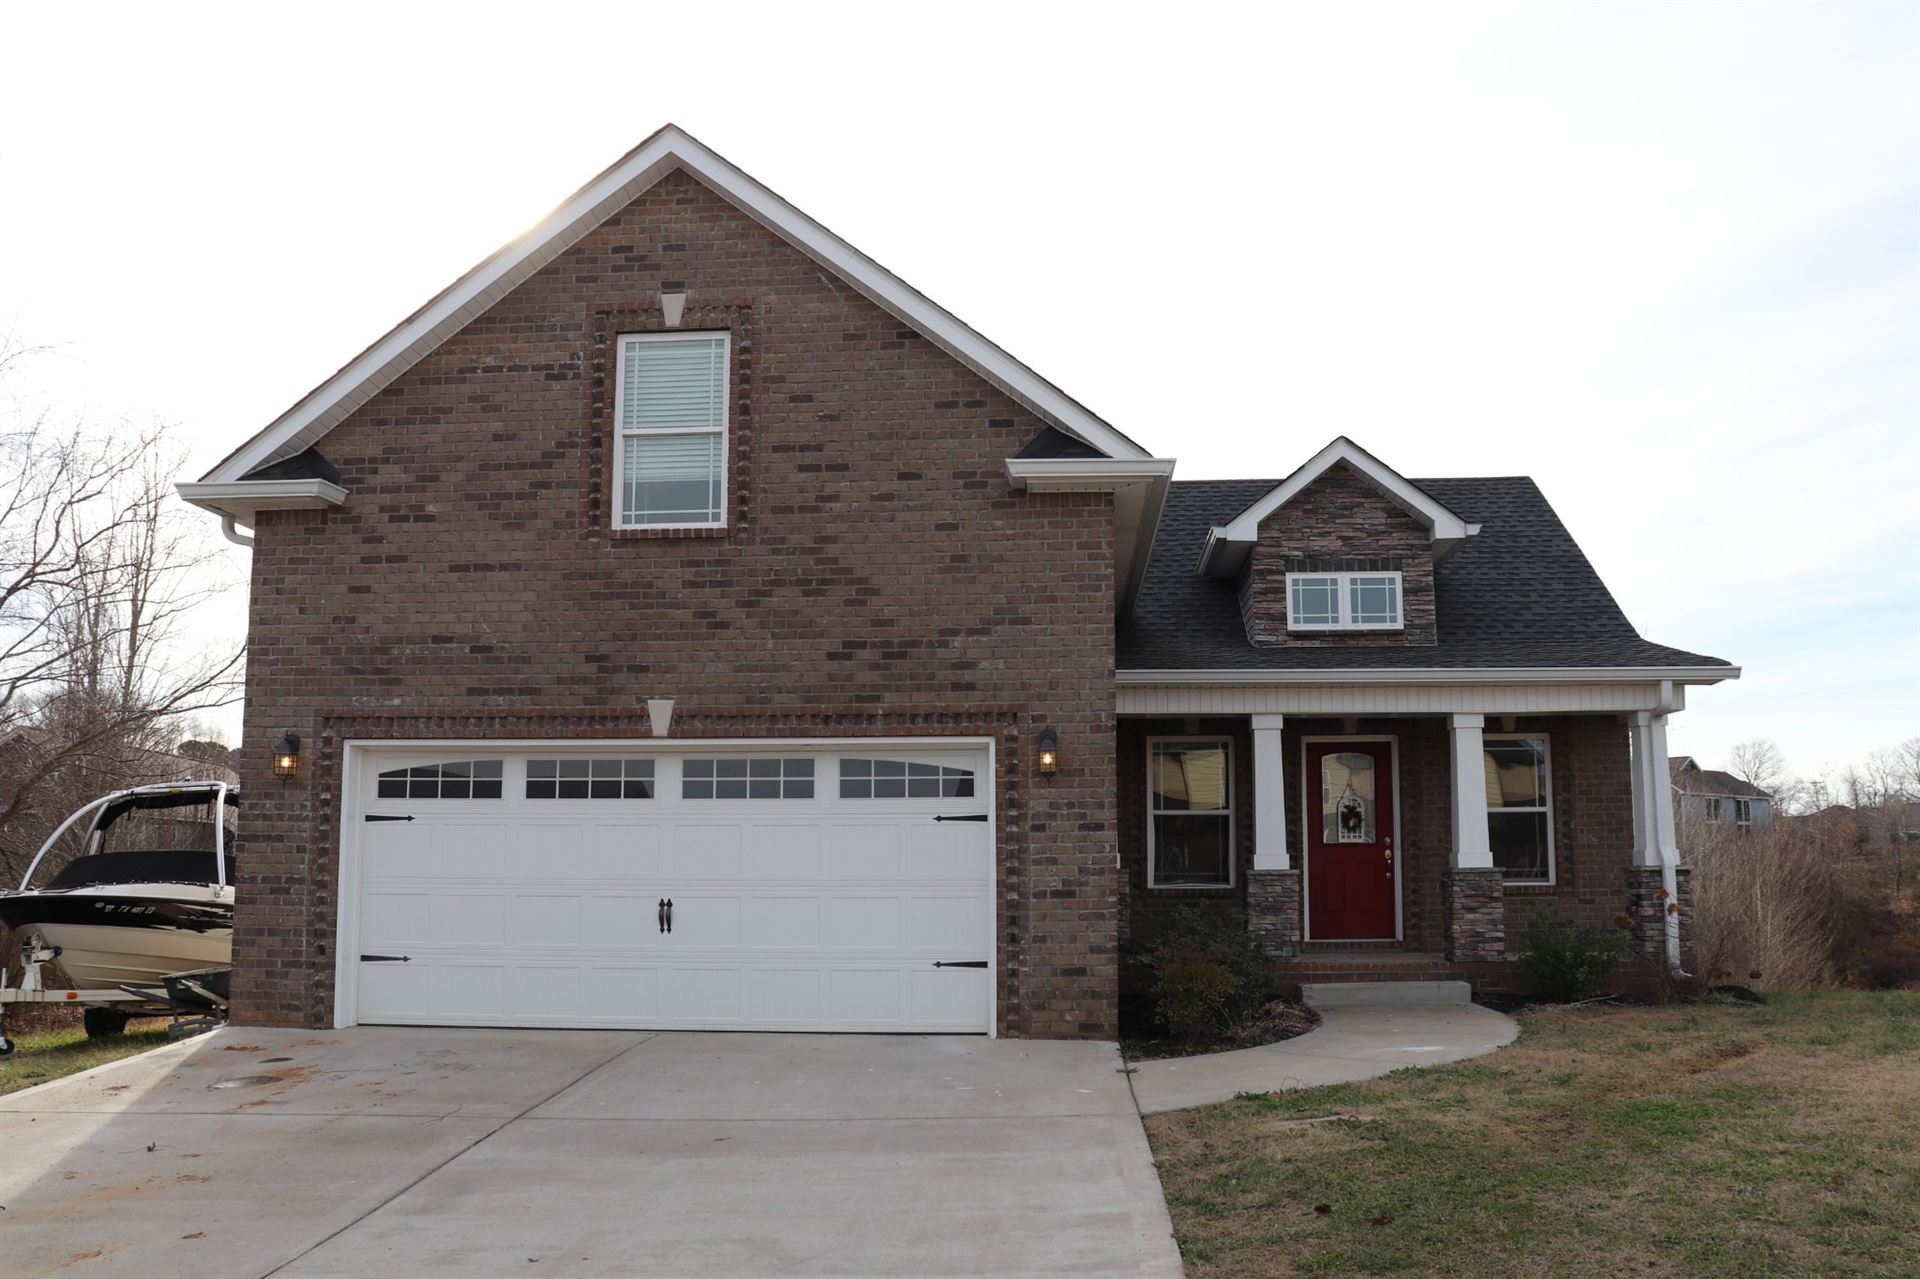 974 Big Sky Dr, Clarksville, TN 37040 - MLS#: 2215924